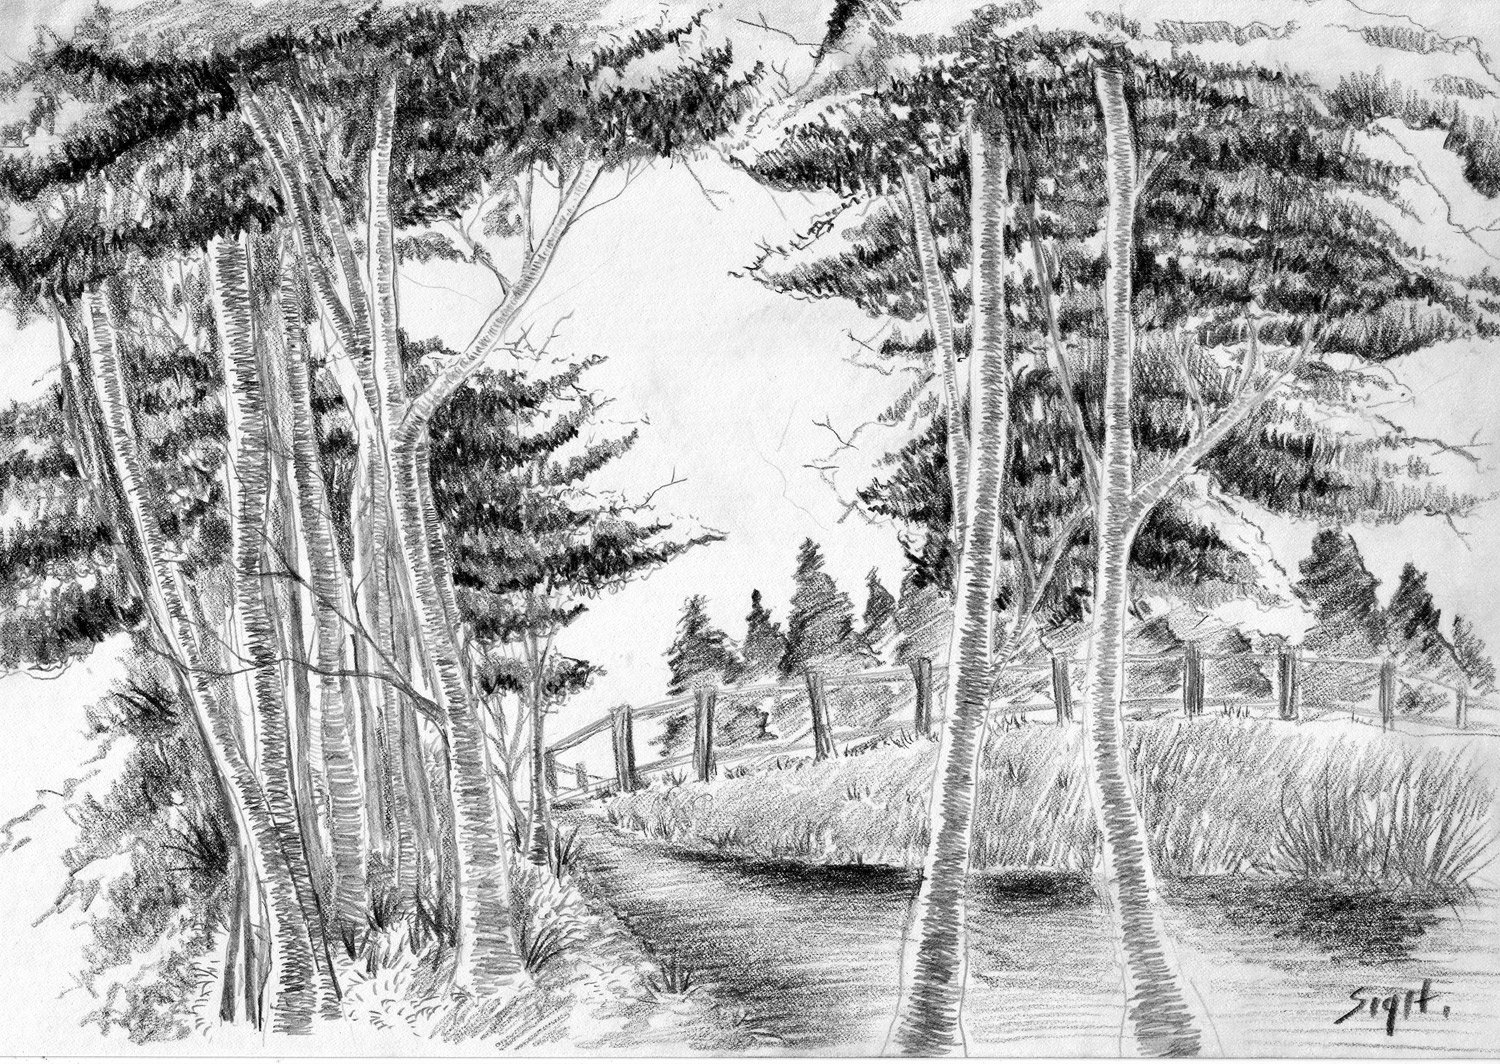 Tree Sketch With Pencil 2B